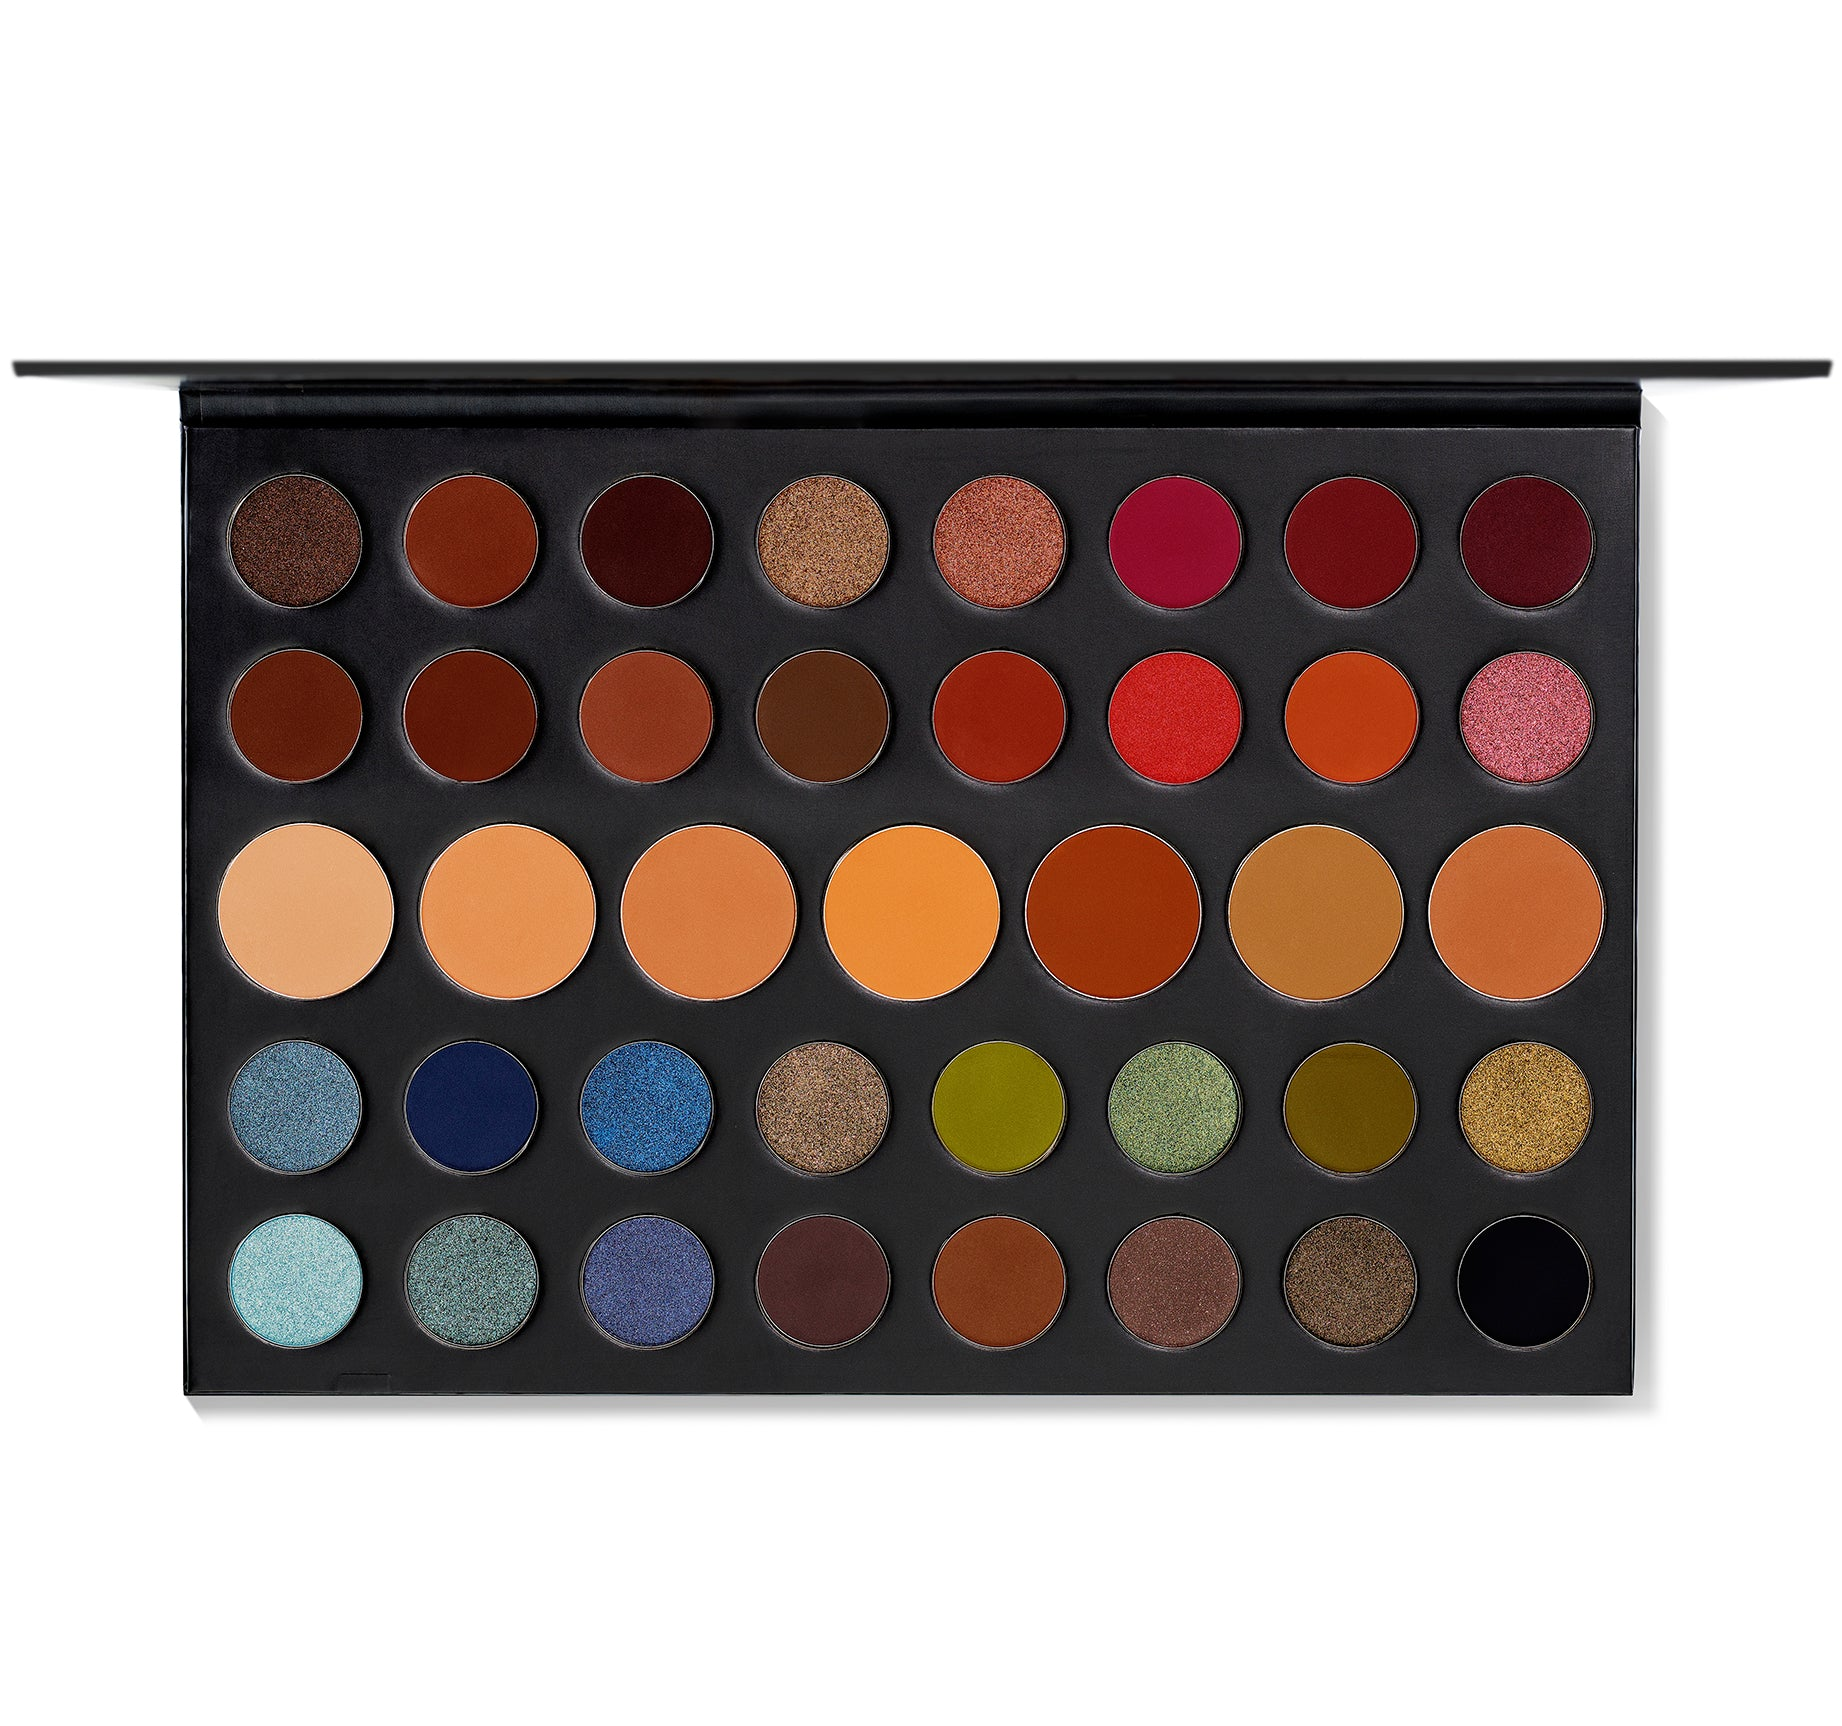 39A DARE TO CREATE ARTISTRY PALETTE